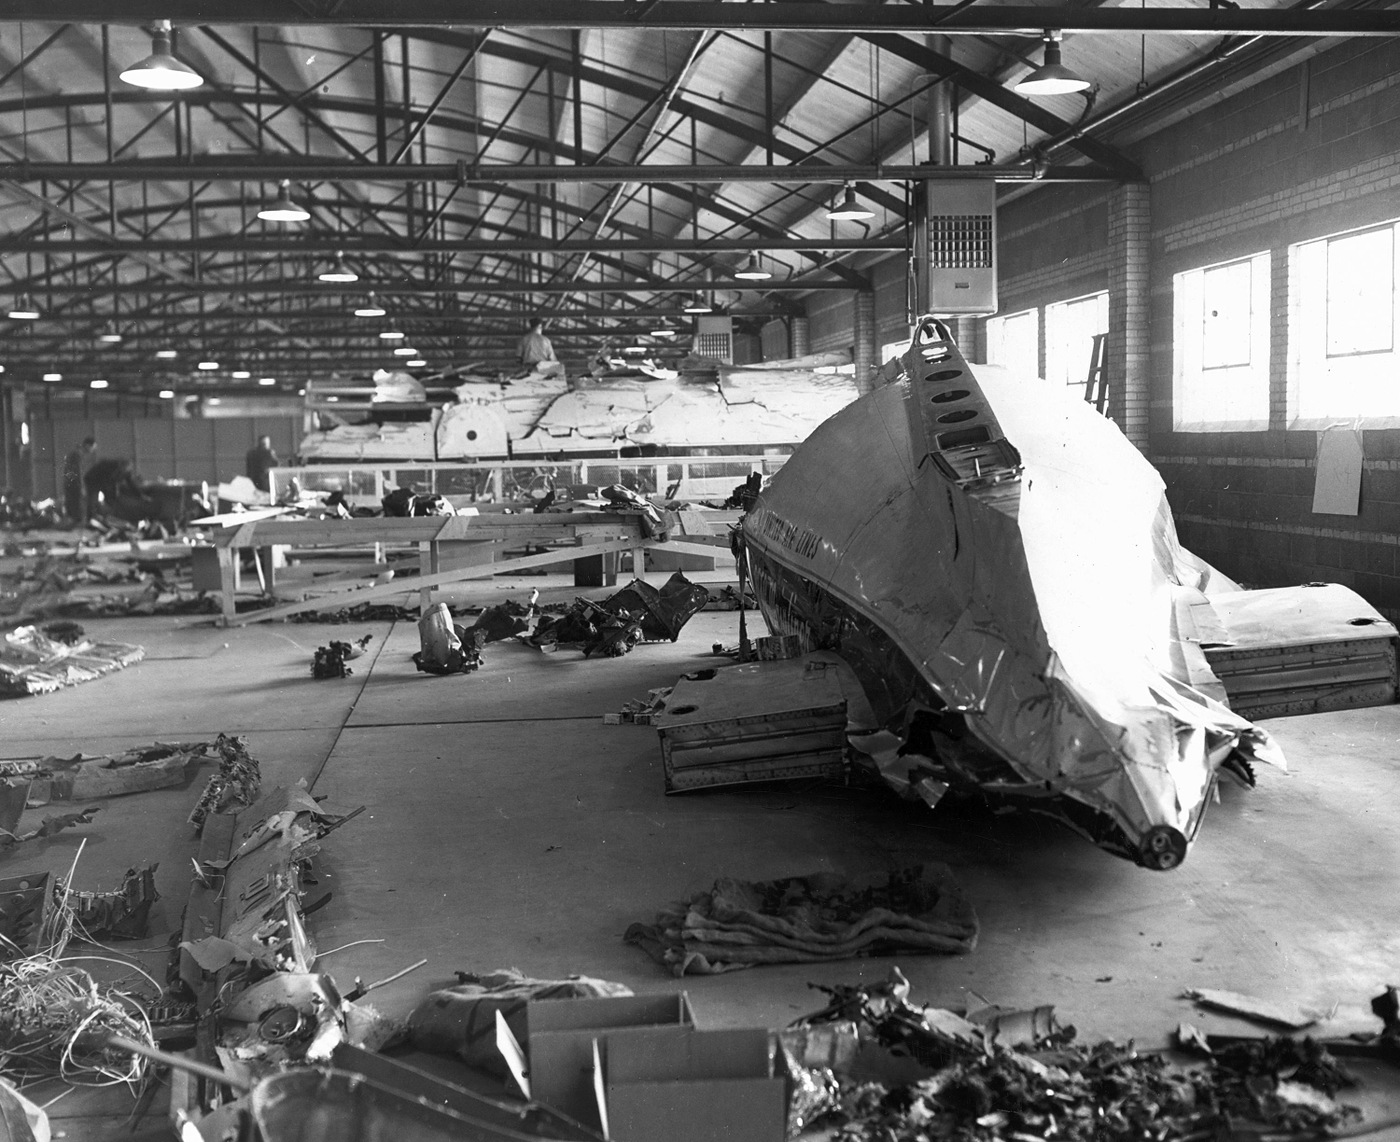 Wreckage of United Airlines flight 629 that crashed November 1, 1955 in Colorado, laid out in a Denver warehouse to solve the mystery of the bombing by Jack Graham.